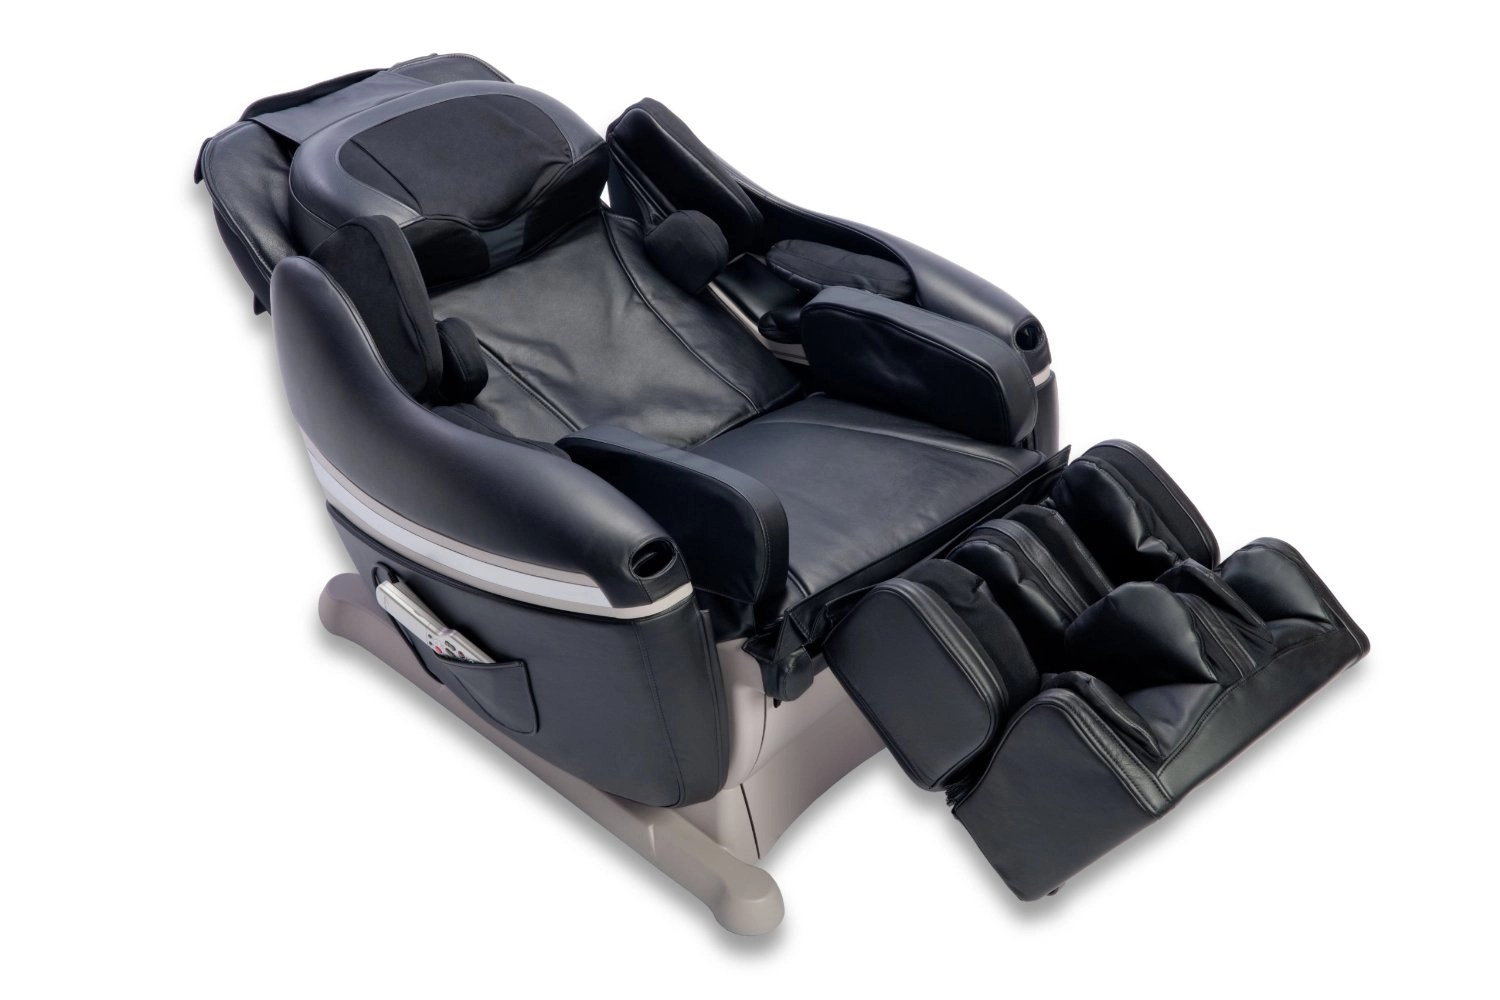 Inada Dreamwave Massage Chair Inada Dreamwave Massage Chair Review